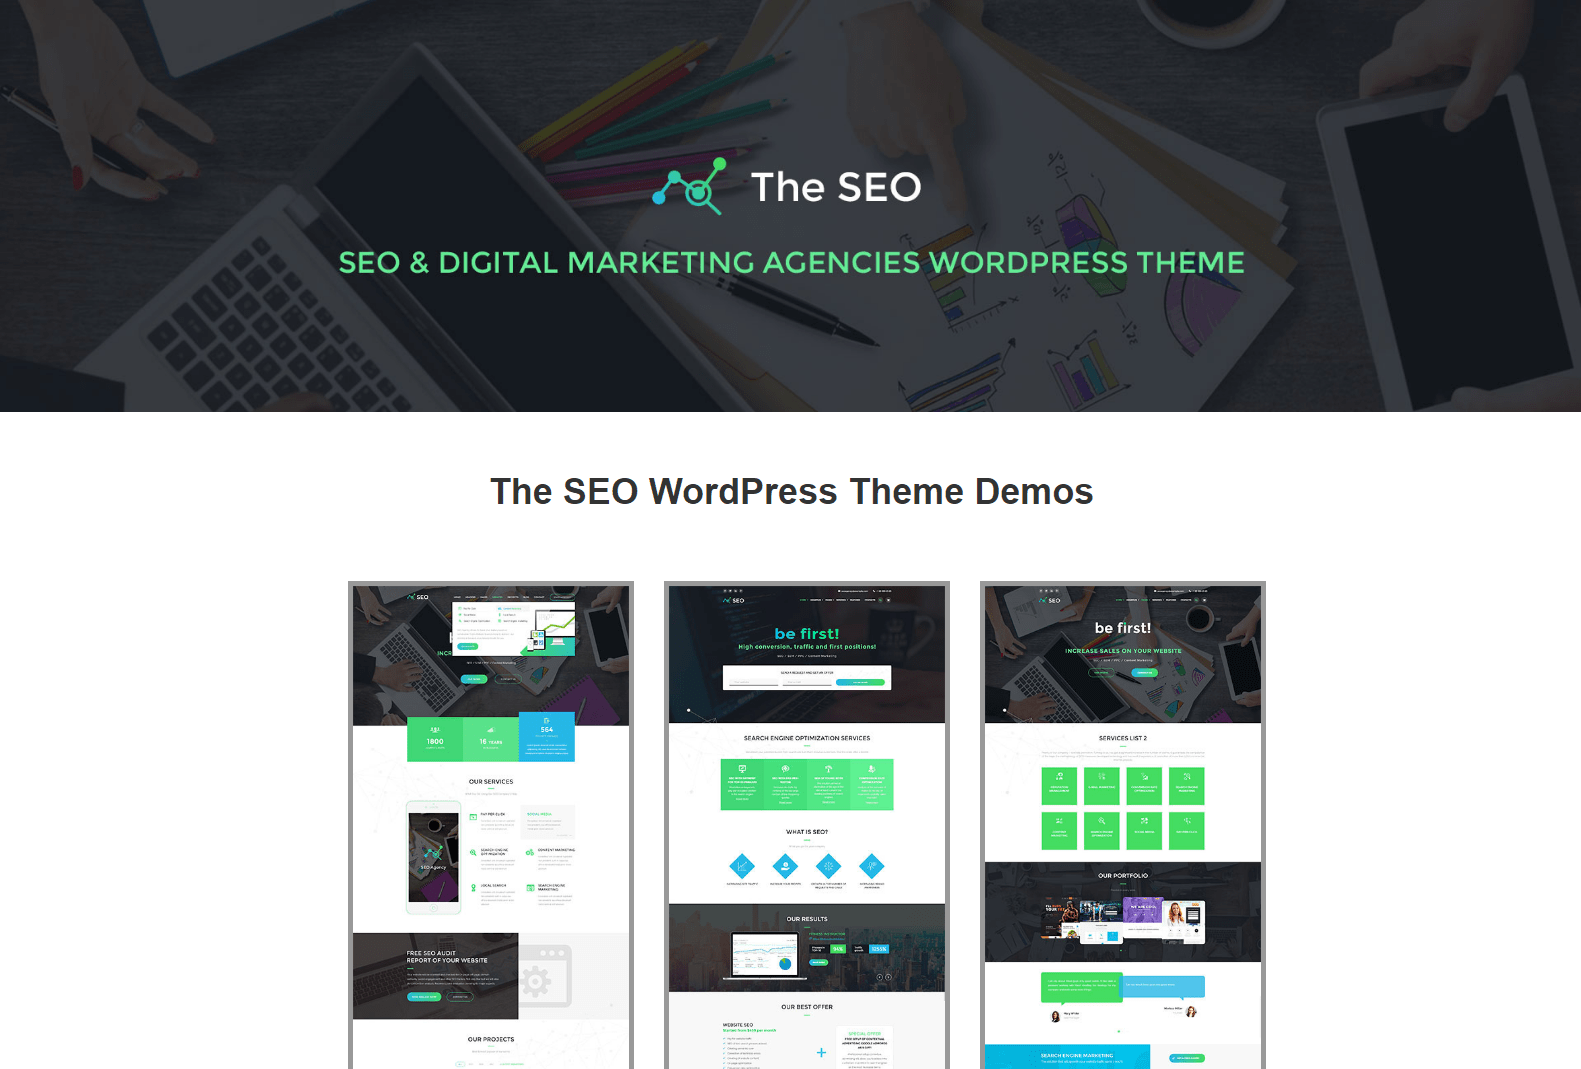 the seo-marketing theme wordpress - finance wordpress theme - marketing wordpress theme - wordpress theme